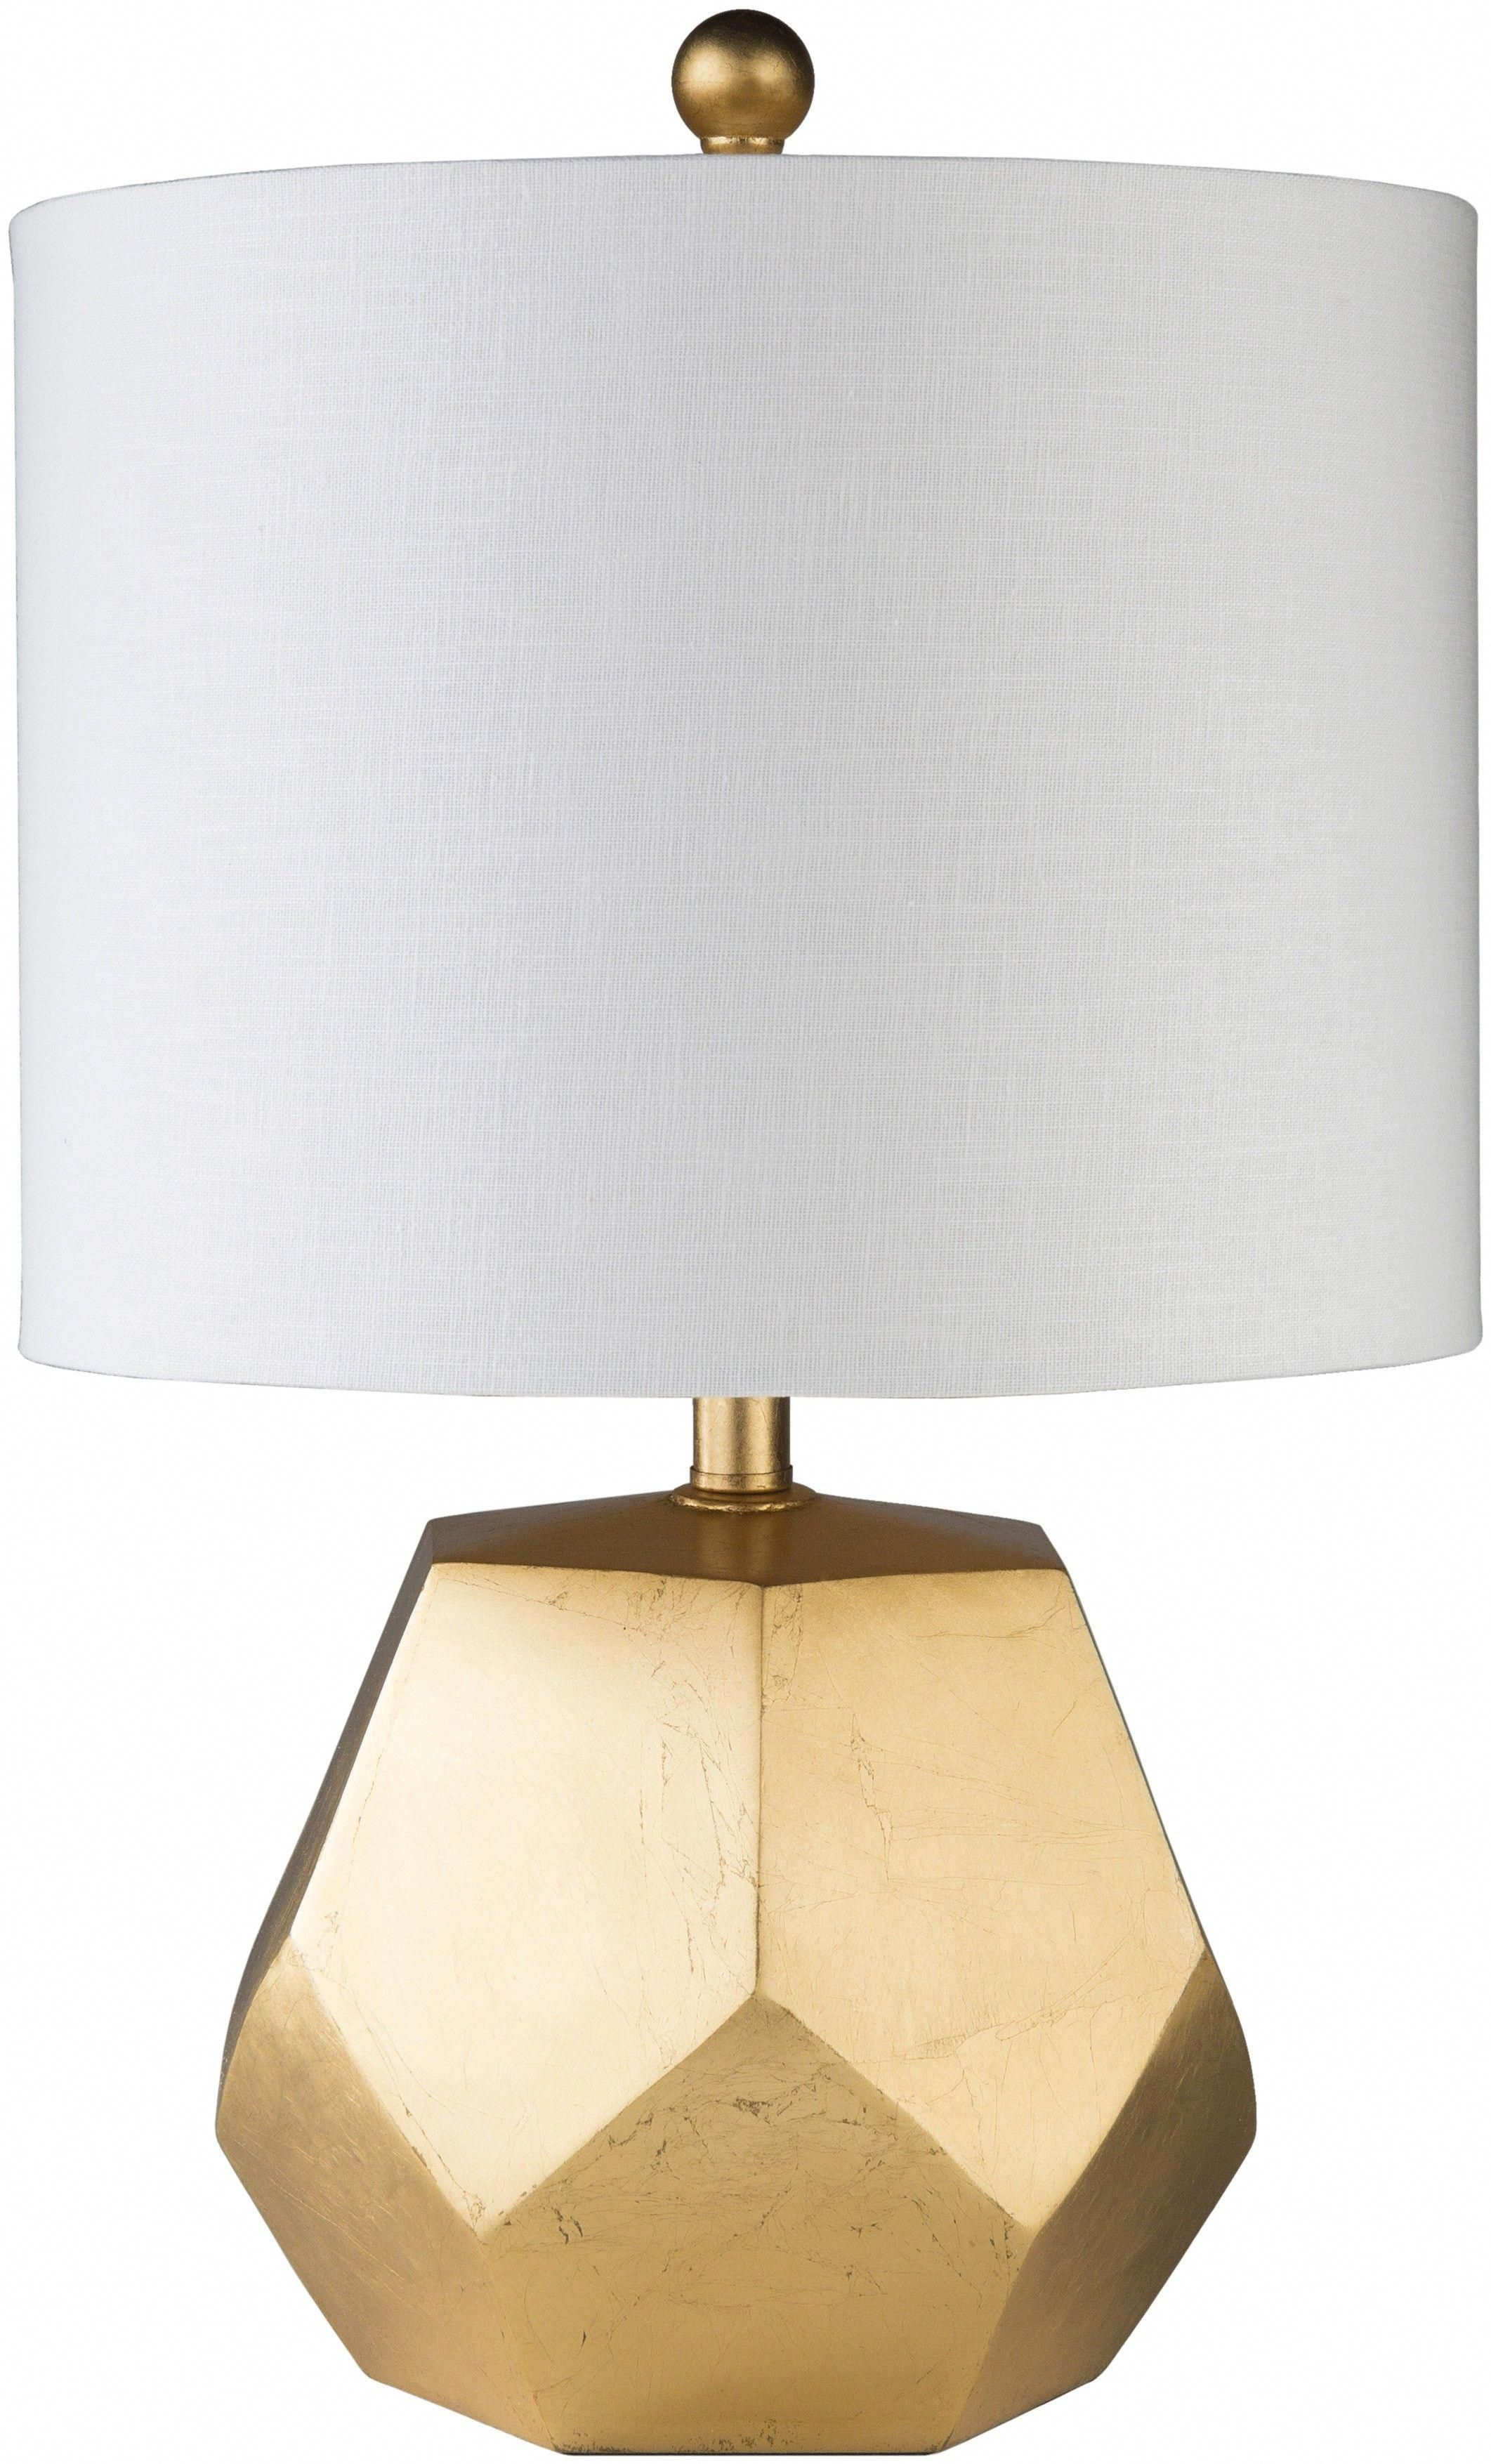 This faceted table lamp in bright gold will bring dimension and